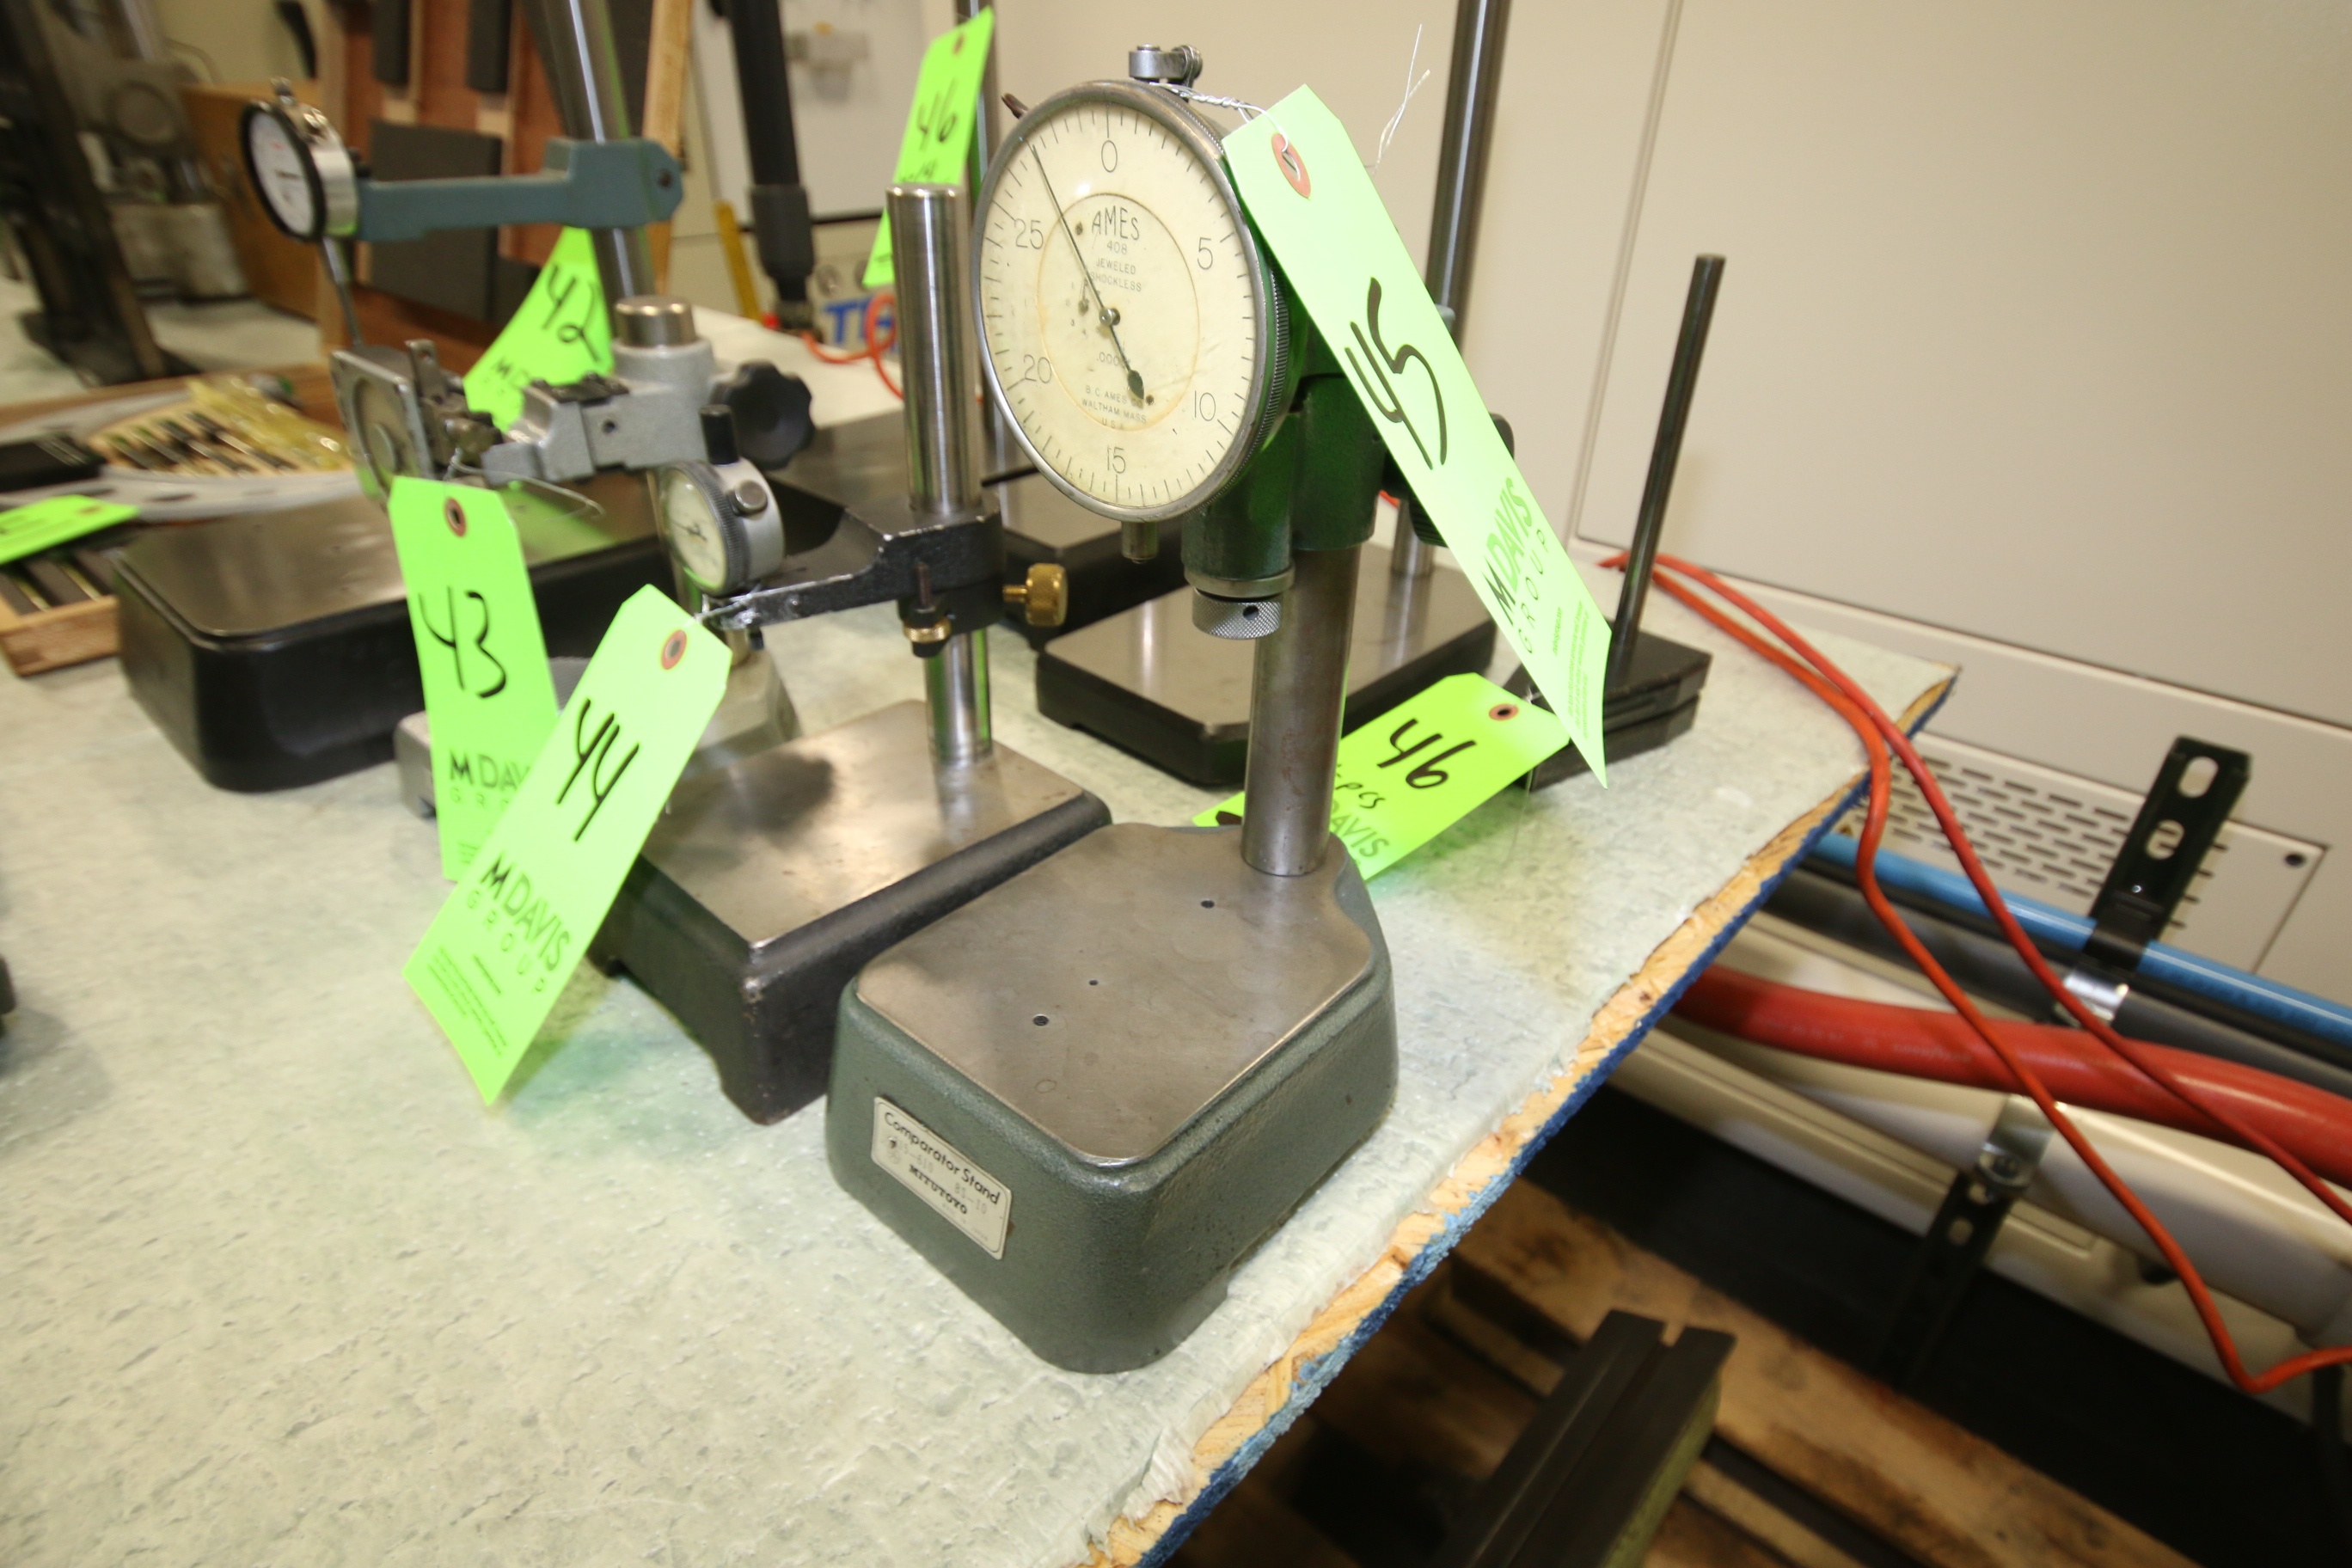 Lot 45 - Mitutoyo Indicator Stand, Model 15-610 BS-10